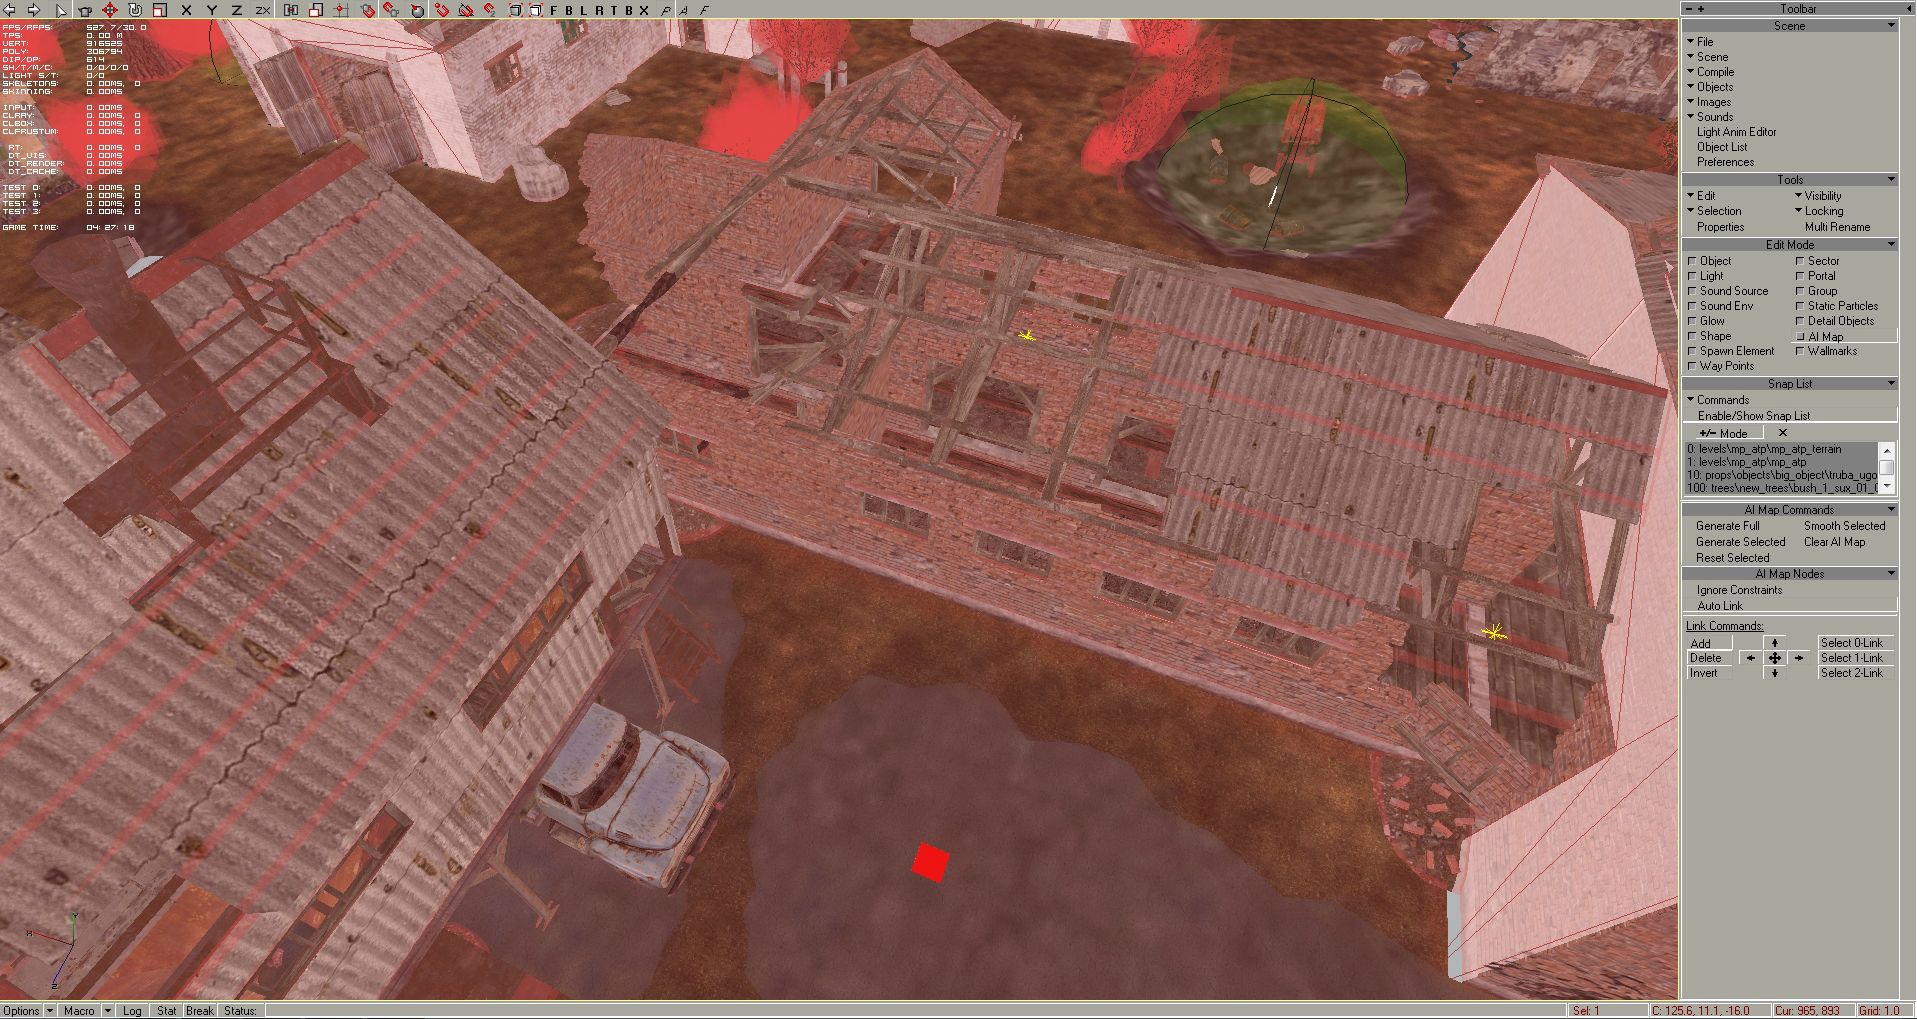 When you selected all needed (or simply all) objects on the level, you need to place at least one ai node by hand on the map inside the playable/fenced area. So click on the bucket